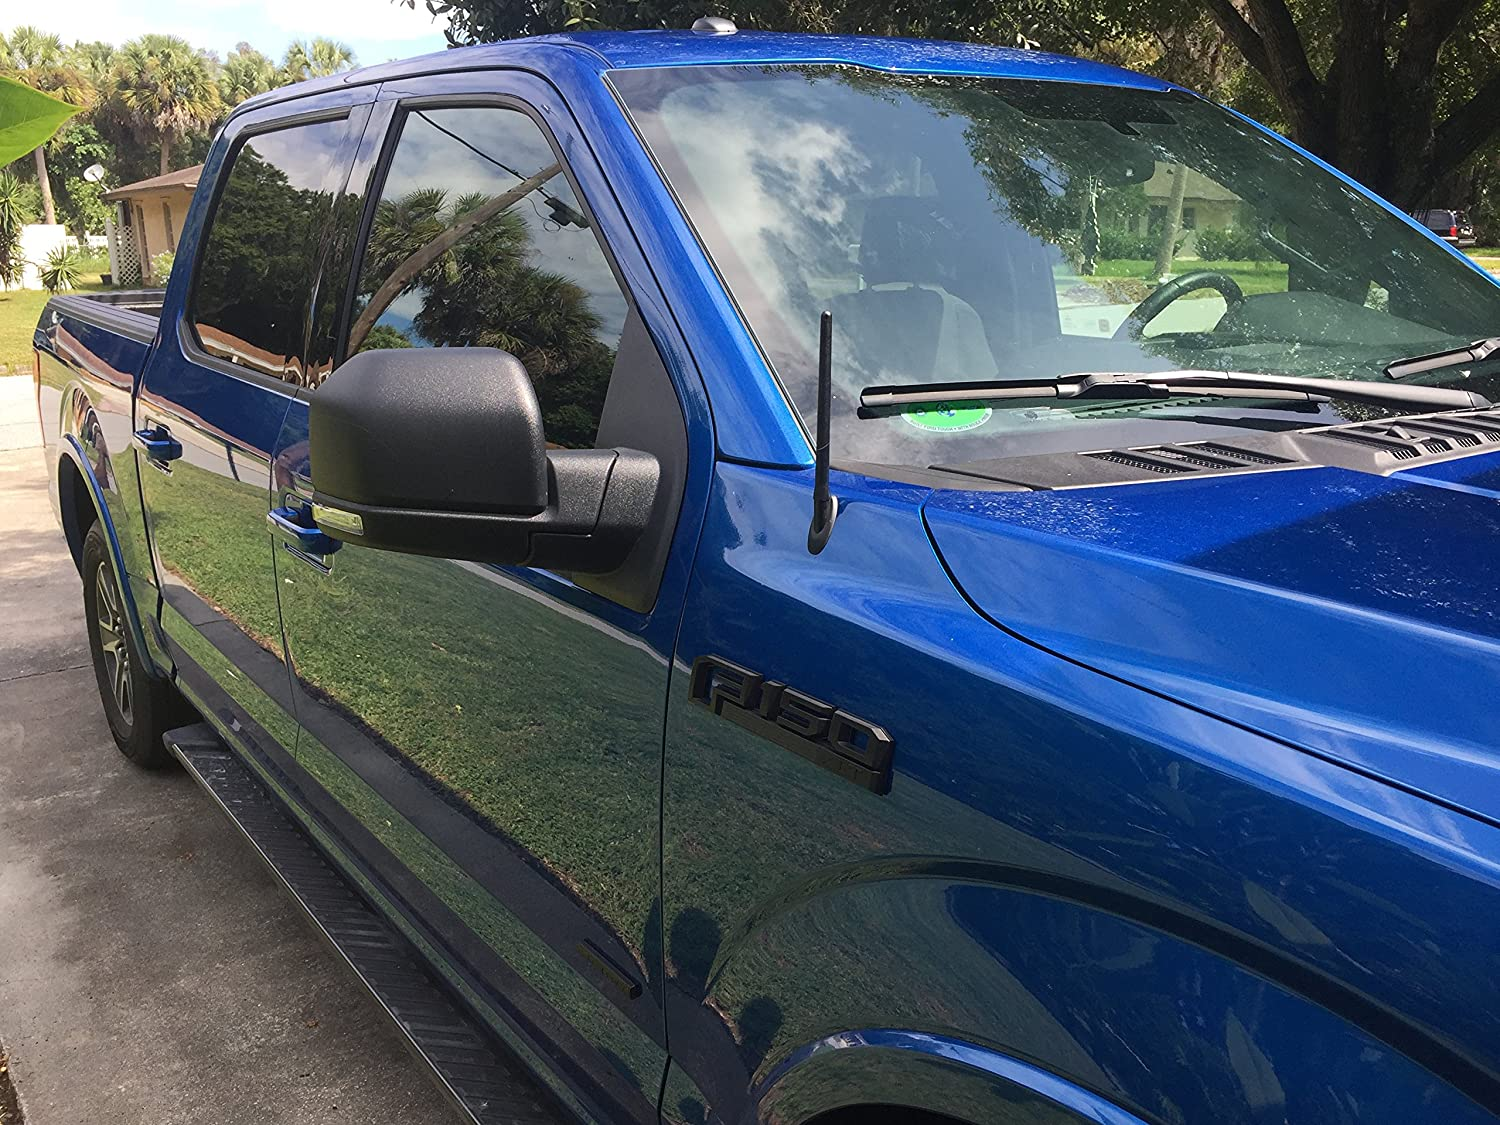 2009-2019 The Original 6 3//4 Inch is Compatible with Ford F-150 Internal Copper Coil AntennaMastsRus Premium Reception German Engineered - Short Rubber Antenna